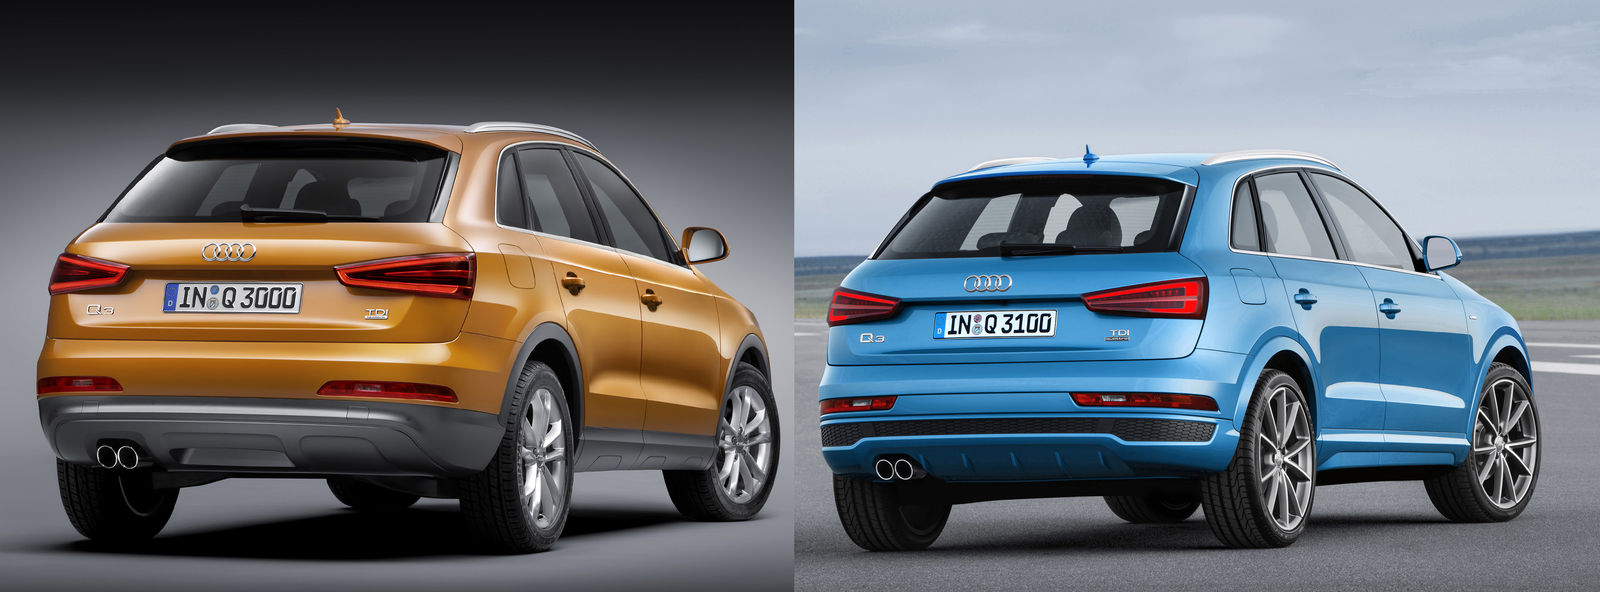 Audi Q3 2015 Facelift Vs Pre Facelift Spot The